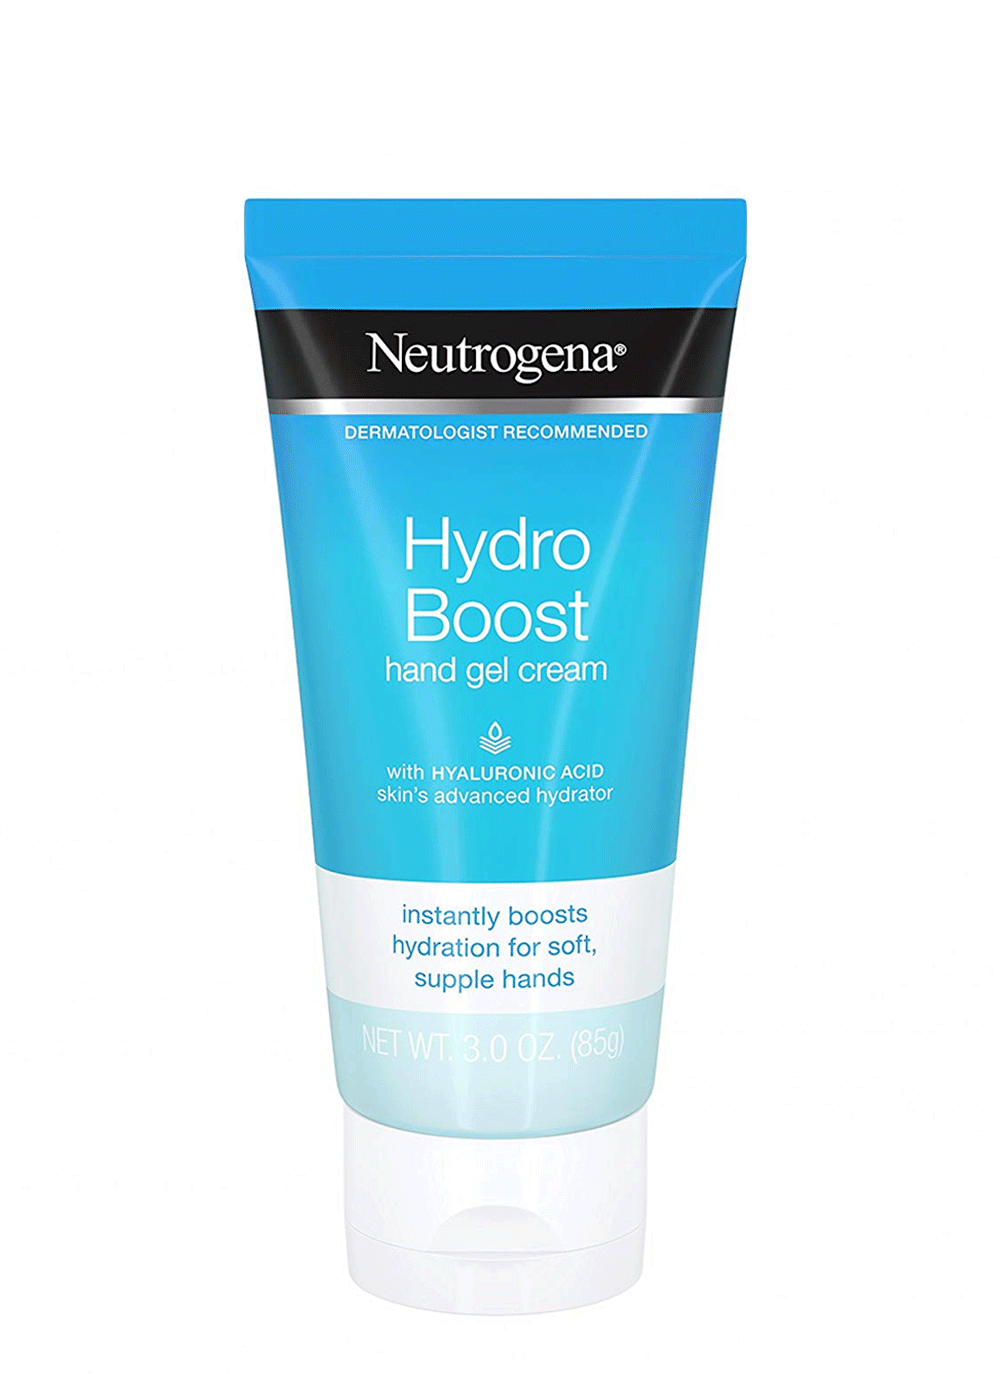 8 Best Hand Creams For Dry, Cracked Skin - Top Hand -1501